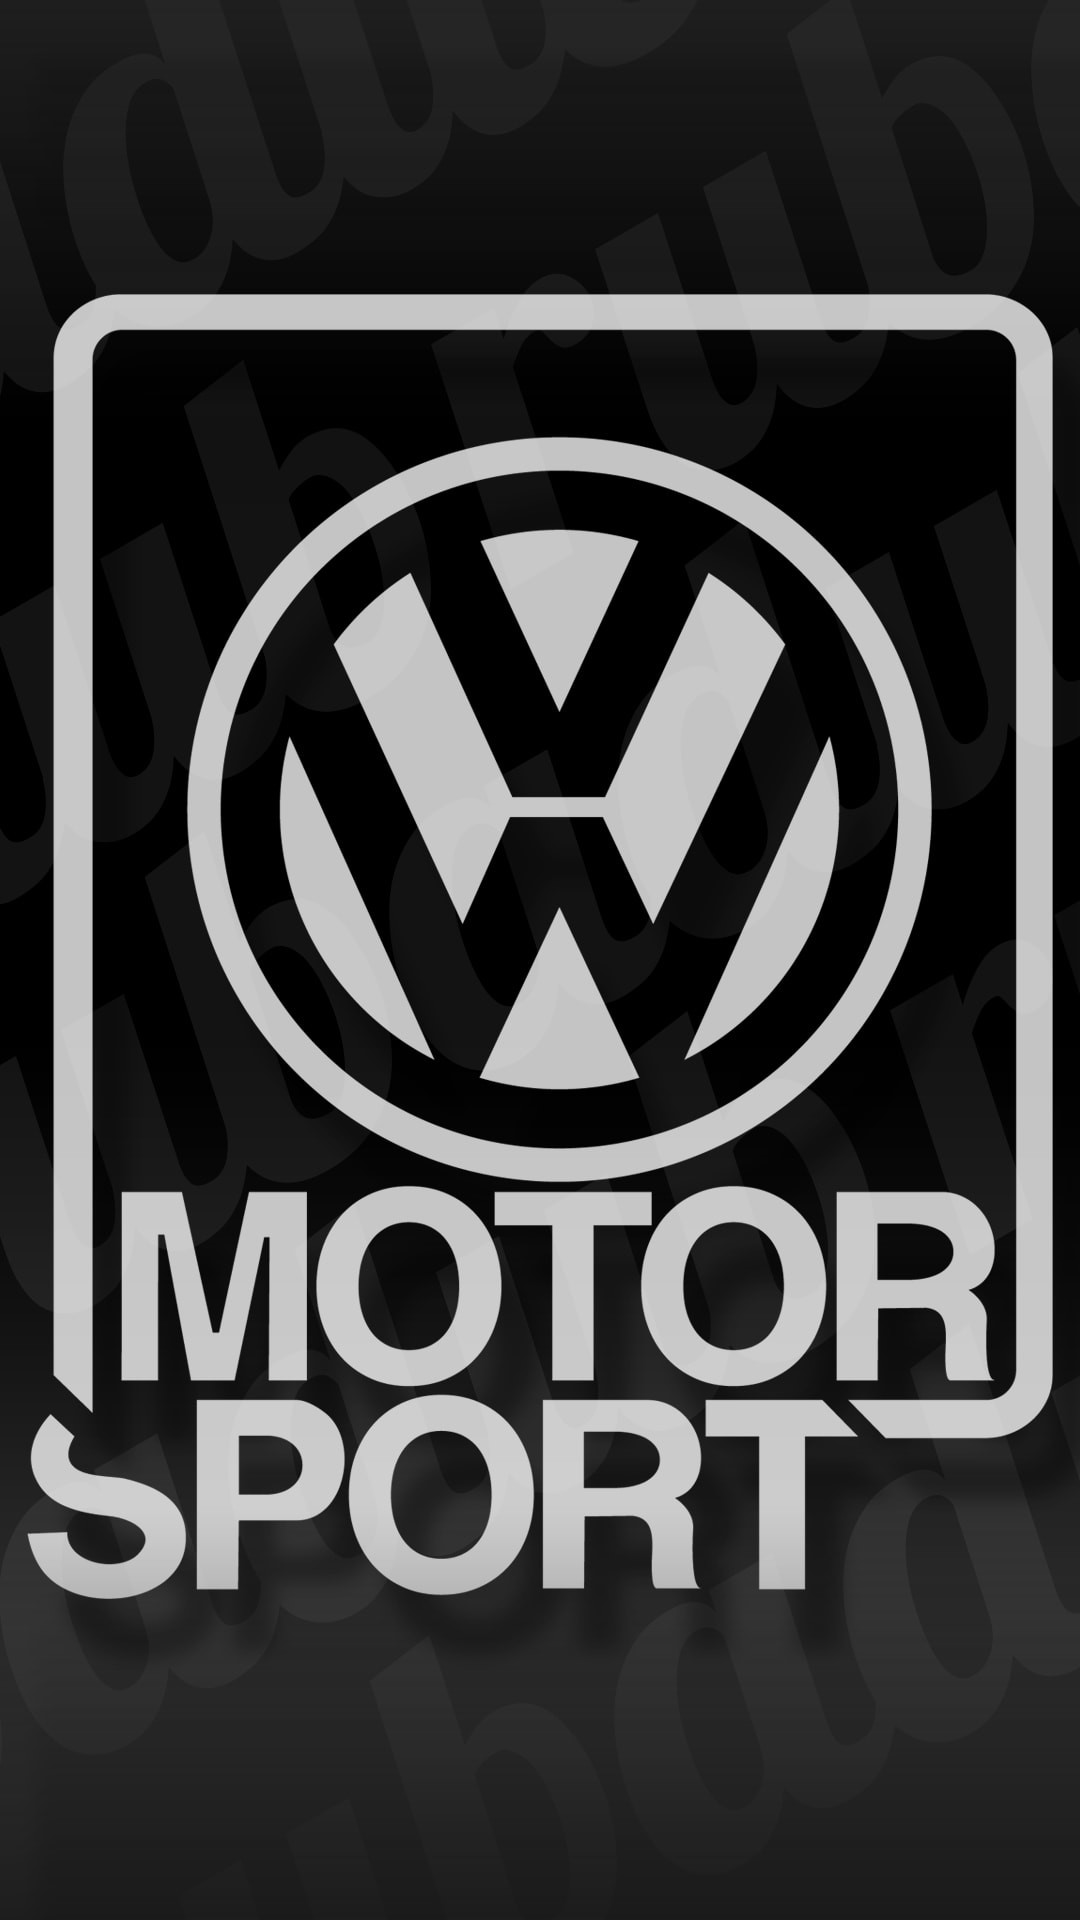 62 Vw Logo Wallpapers on WallpaperPlay 1080x1920